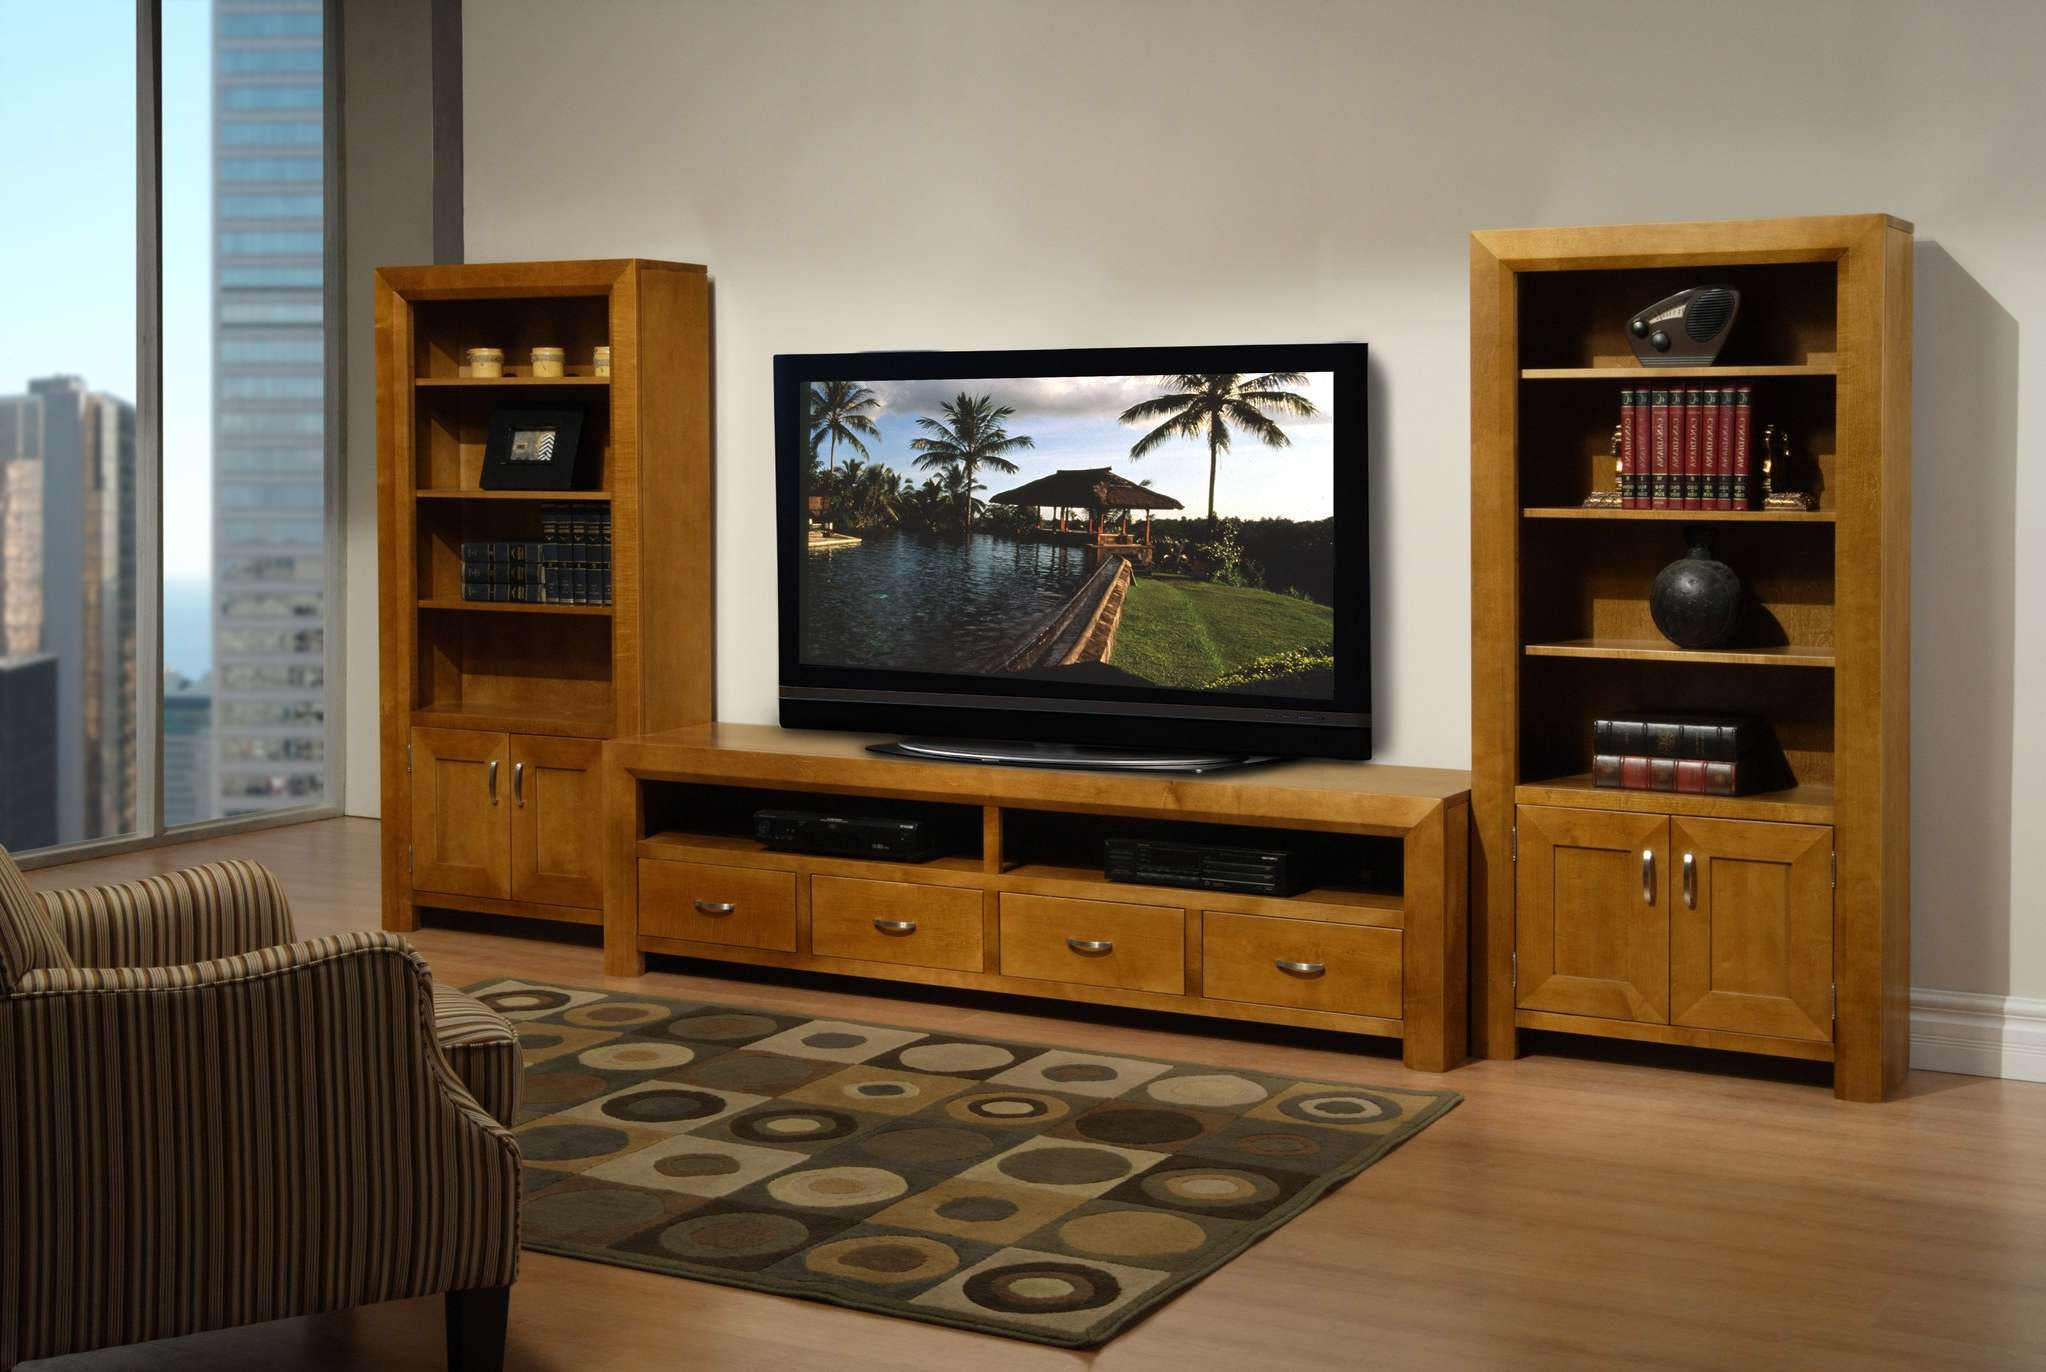 Fancy 84 Inch Tv Stand 27 About Remodel Home Decoration Ideas With Pertaining To 84 Inch Tv Stands (View 3 of 15)